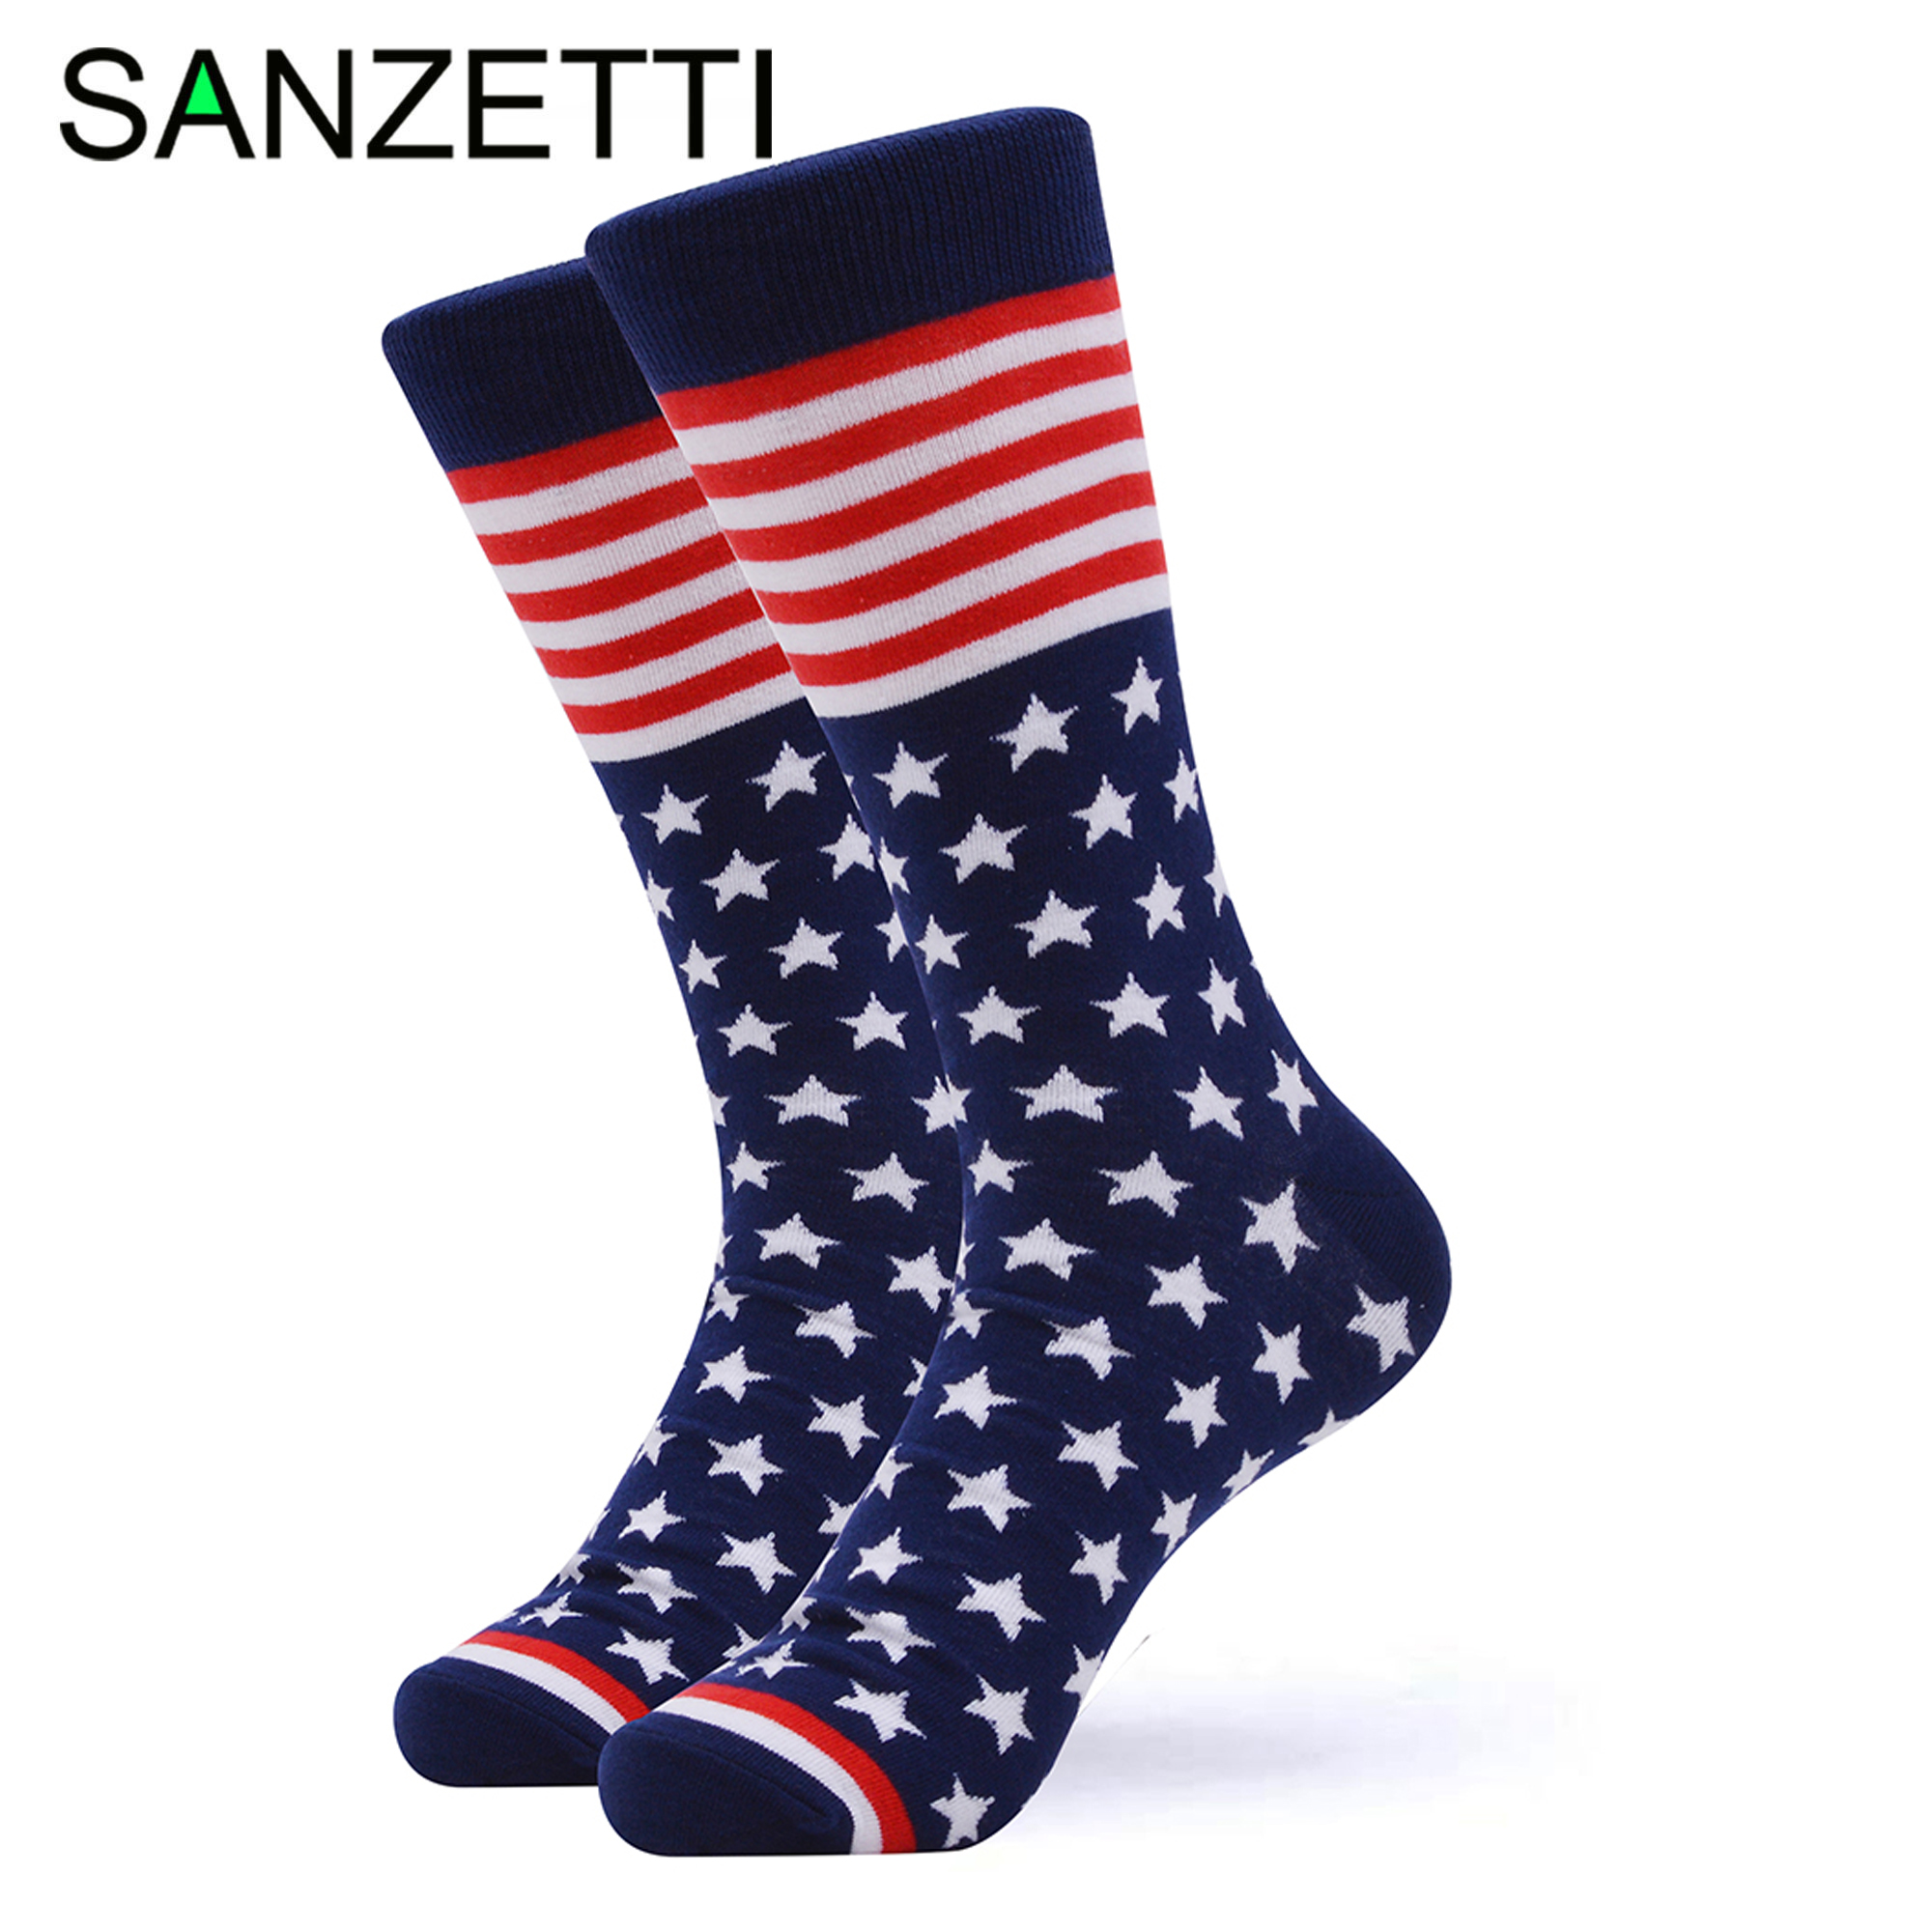 SANZETTI 1 Pair Happy Men's Socks USA Flag Colorful Comfortable Combed Cotton Animal Funny Novelty Gift Wedding Dress Gym Socks